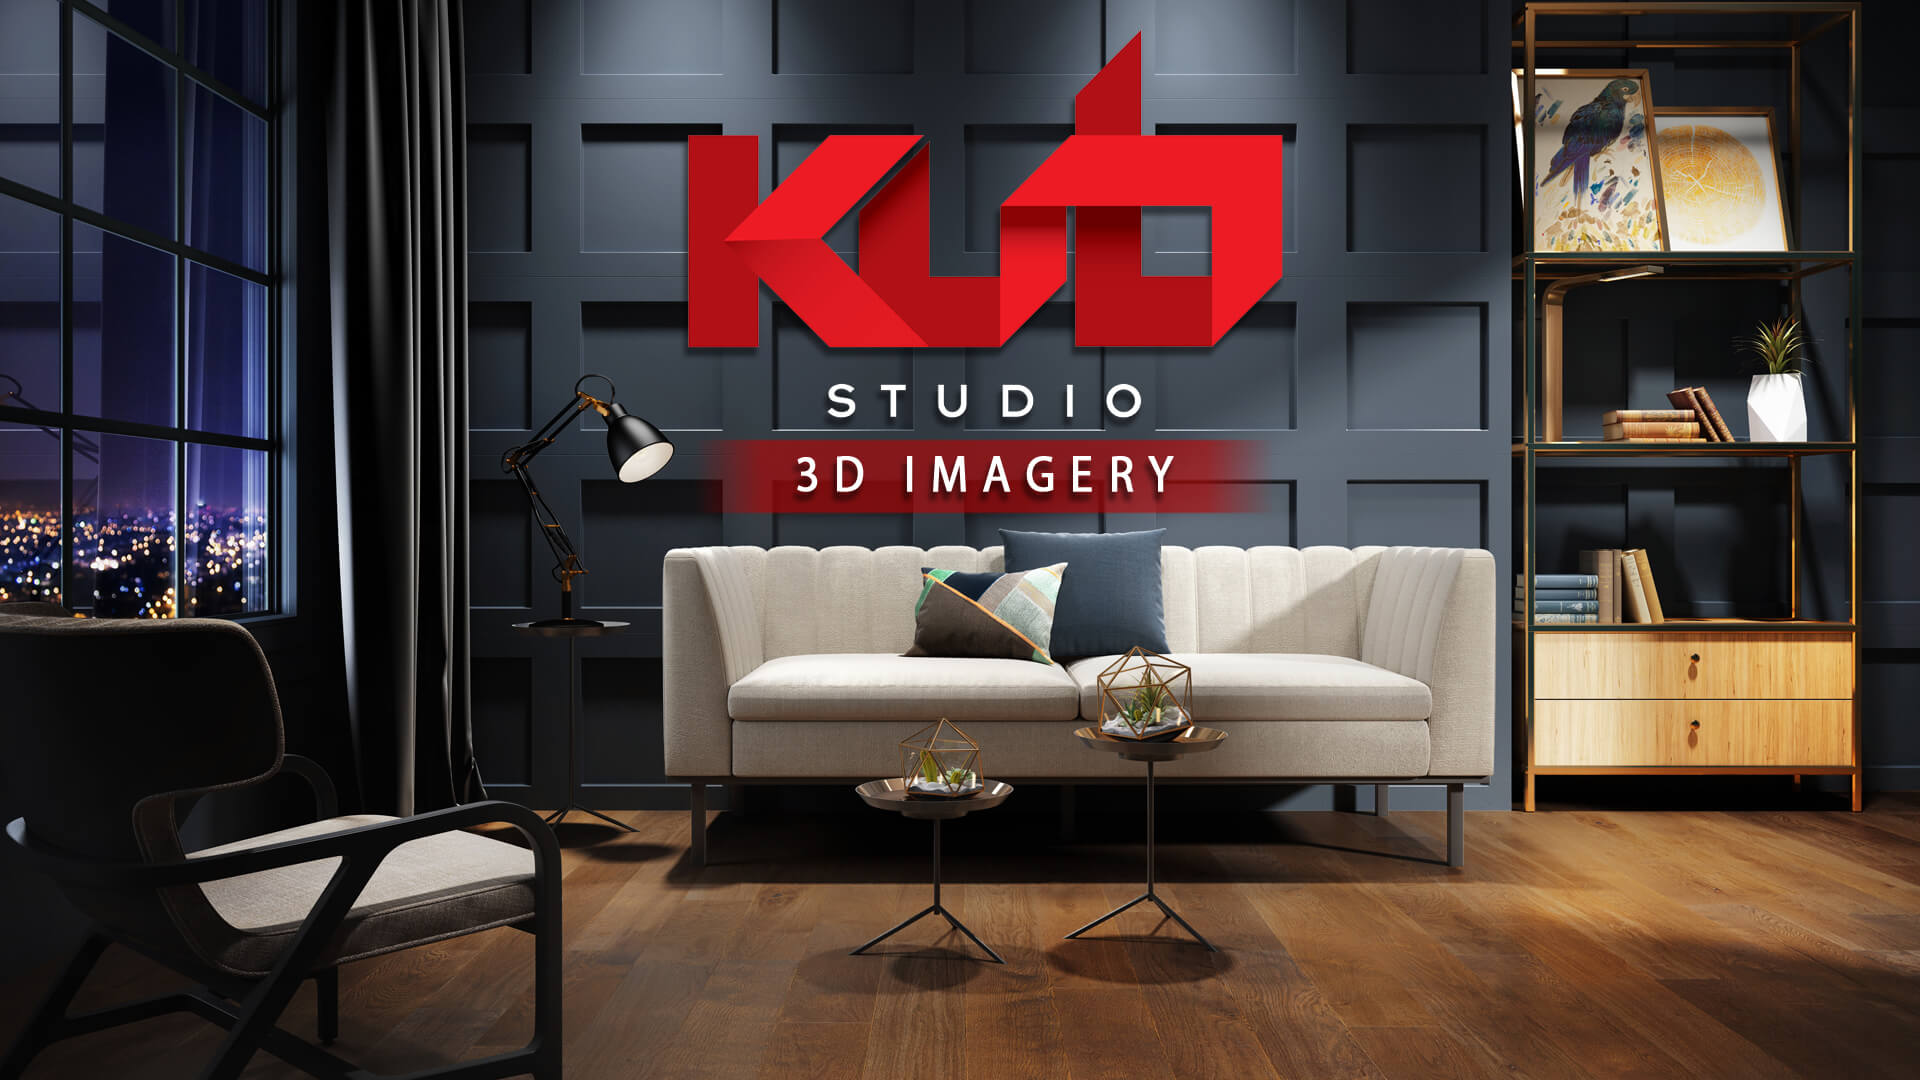 KUB Studio - Making Realistic 3D Imagery and Animation CGI